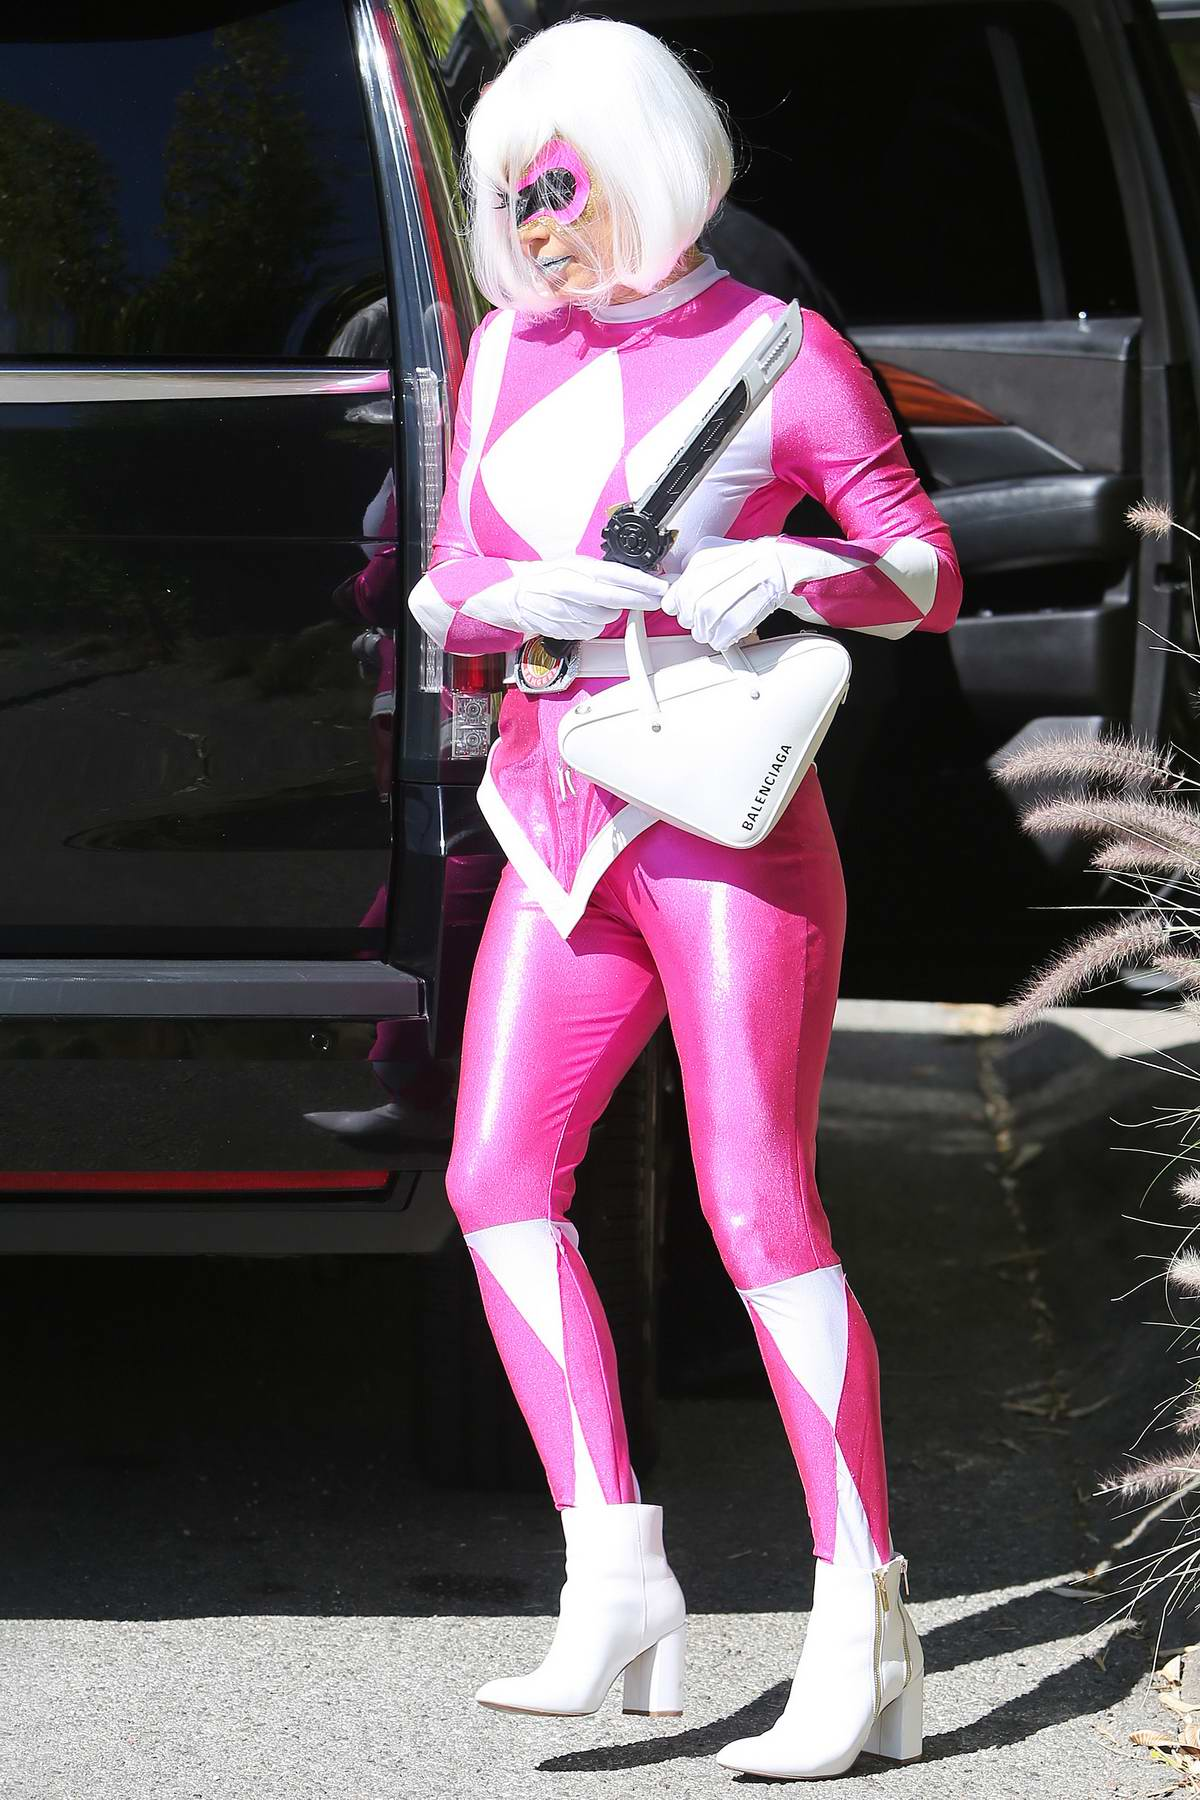 Fergie dresses up as pink Power Ranger on Halloween as she leaves her house in Santa Monica, California